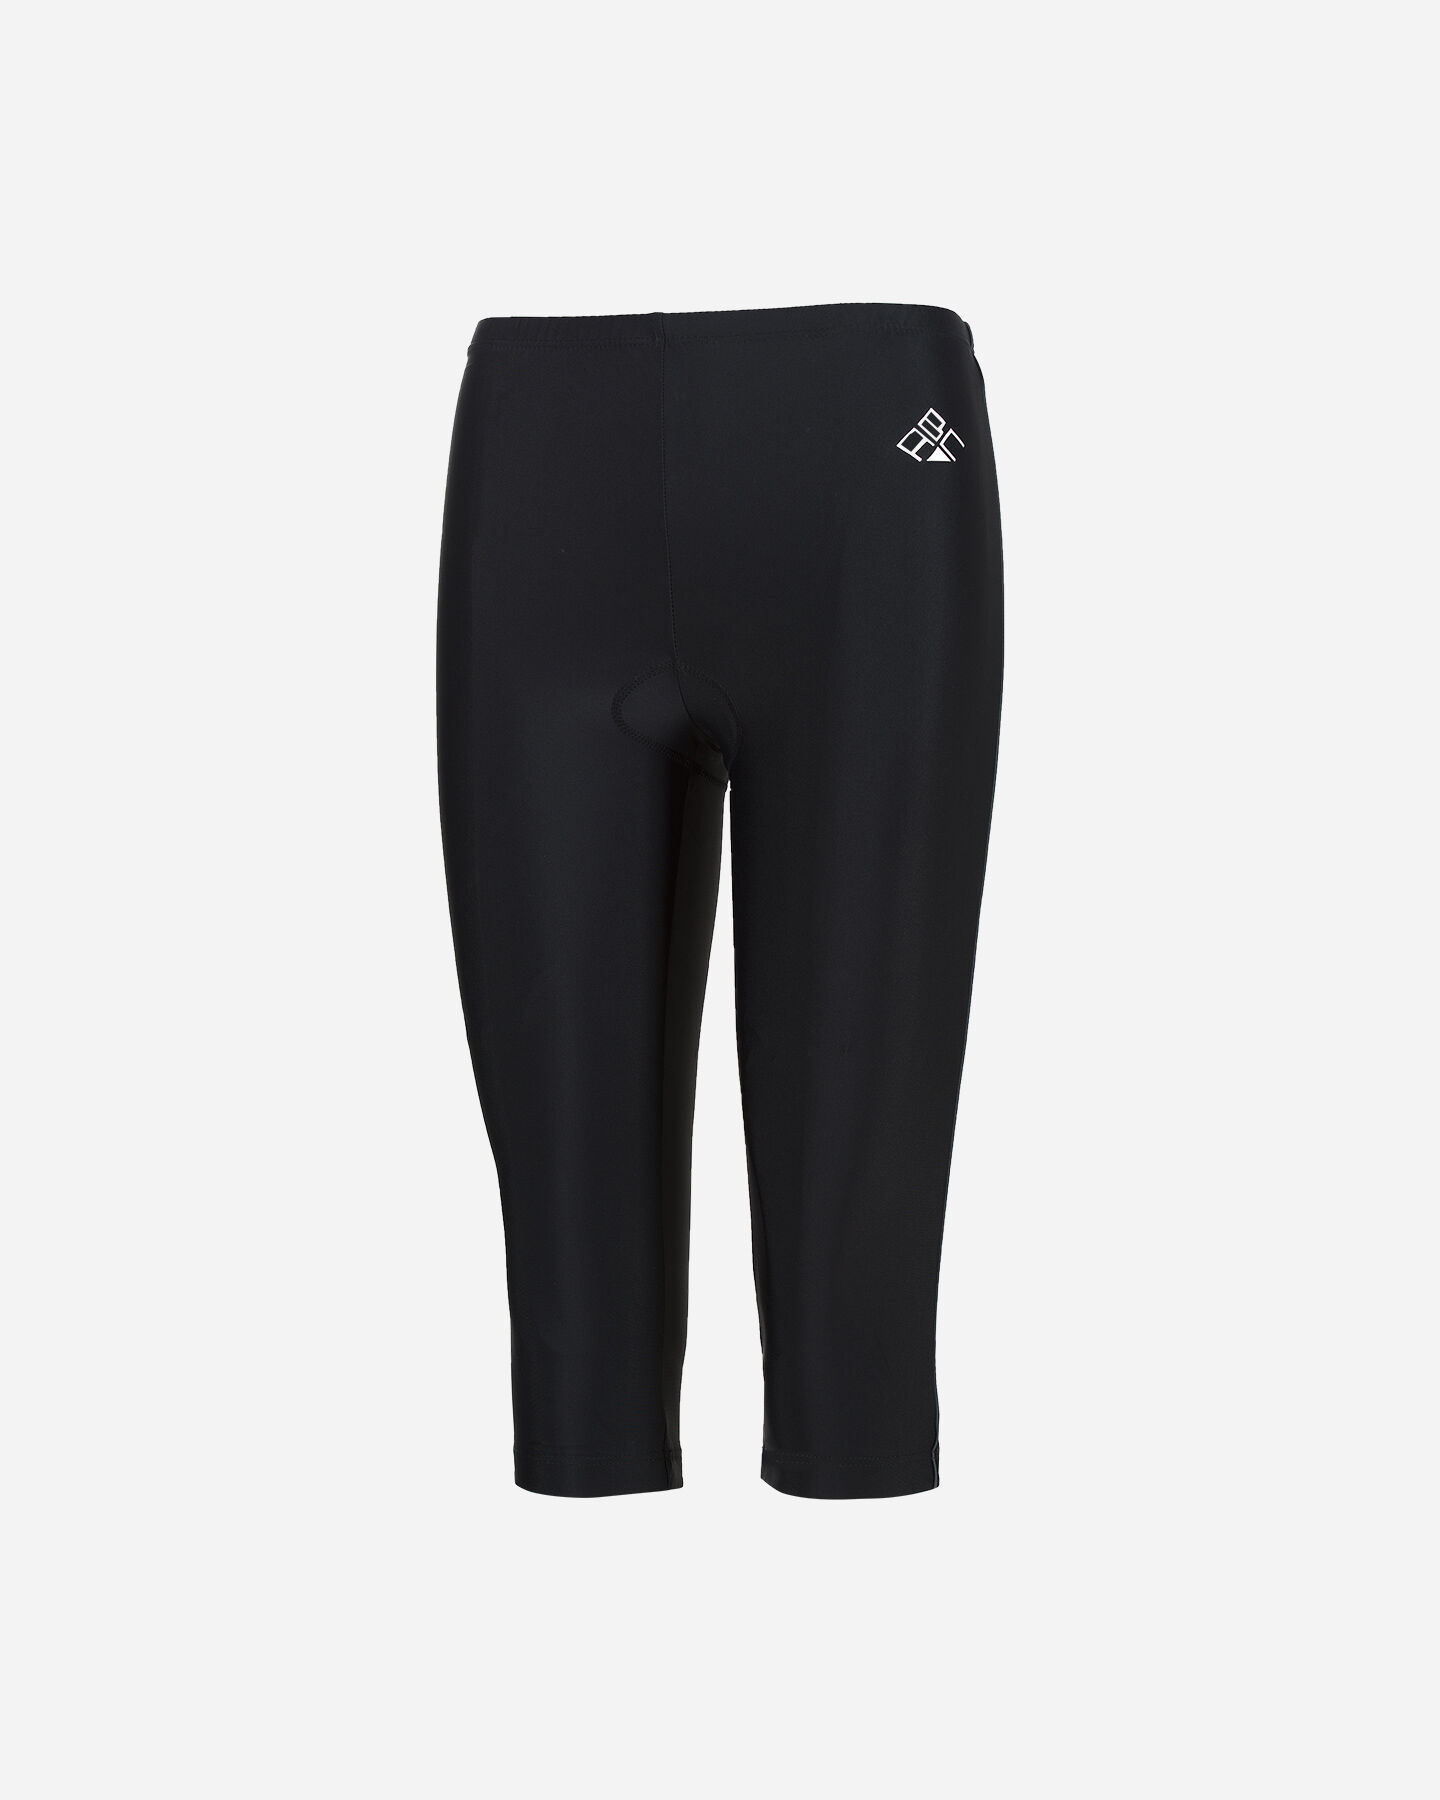 Short ciclismo ABC SUPPL SPINNING W S1126250 scatto 0